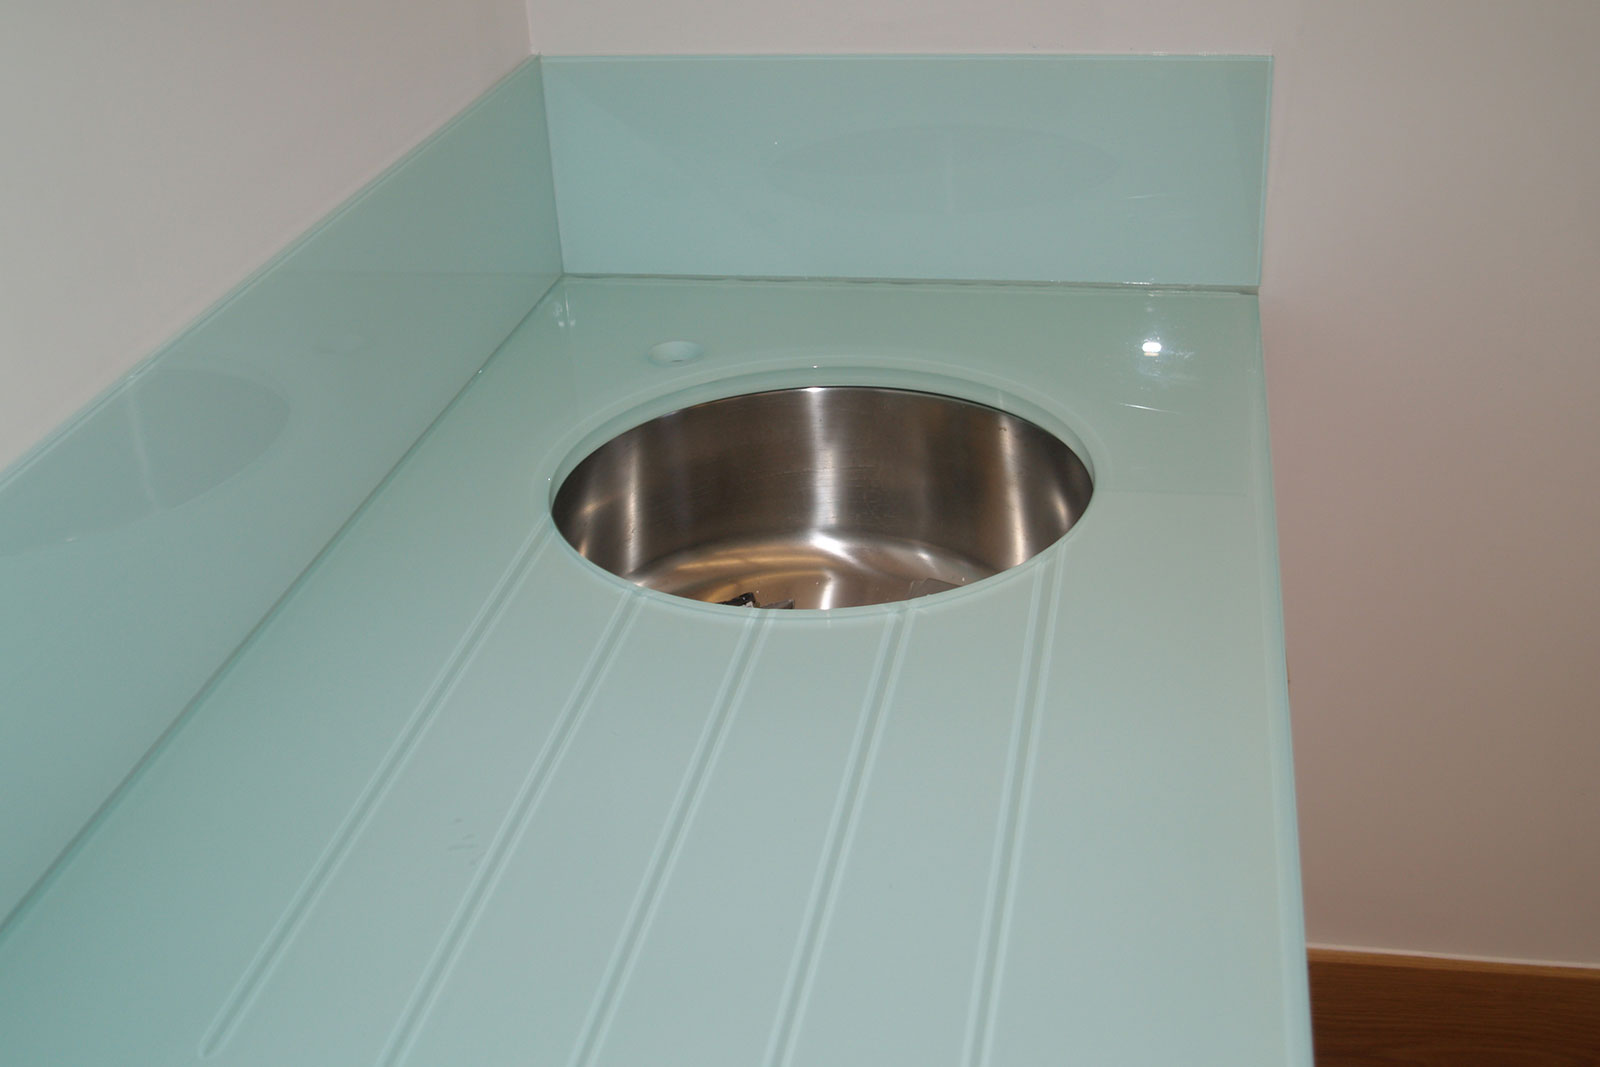 Bespoke Glass Worktop with Sink and Glass Drainer